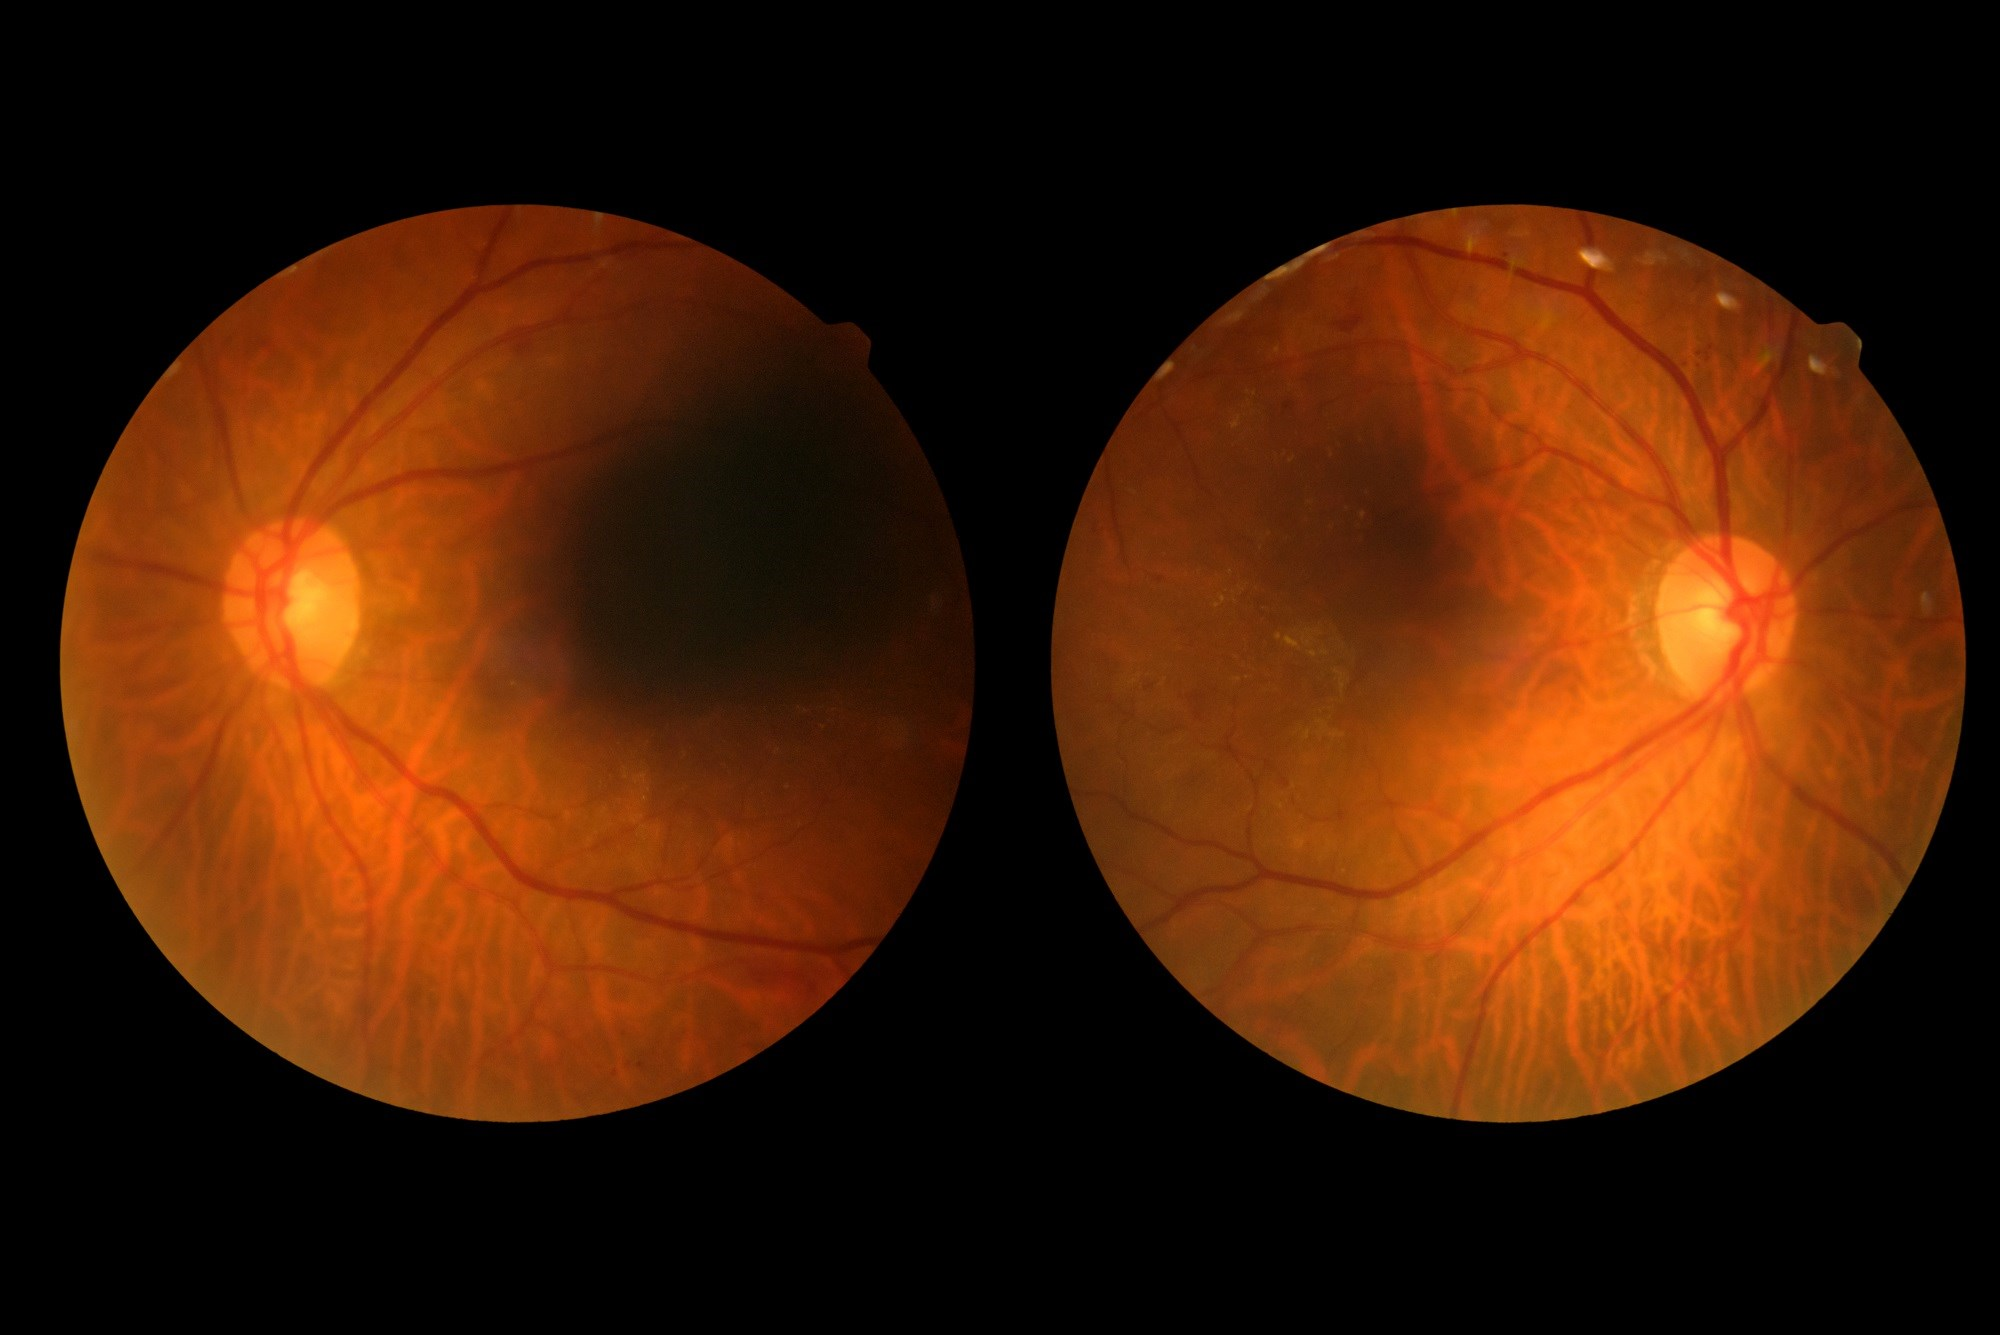 Using data from the FDA Adverse Event Reporting System, researchers found no association between the use of GLP-1 receptor agonists and risk for diabetic retinopathy.